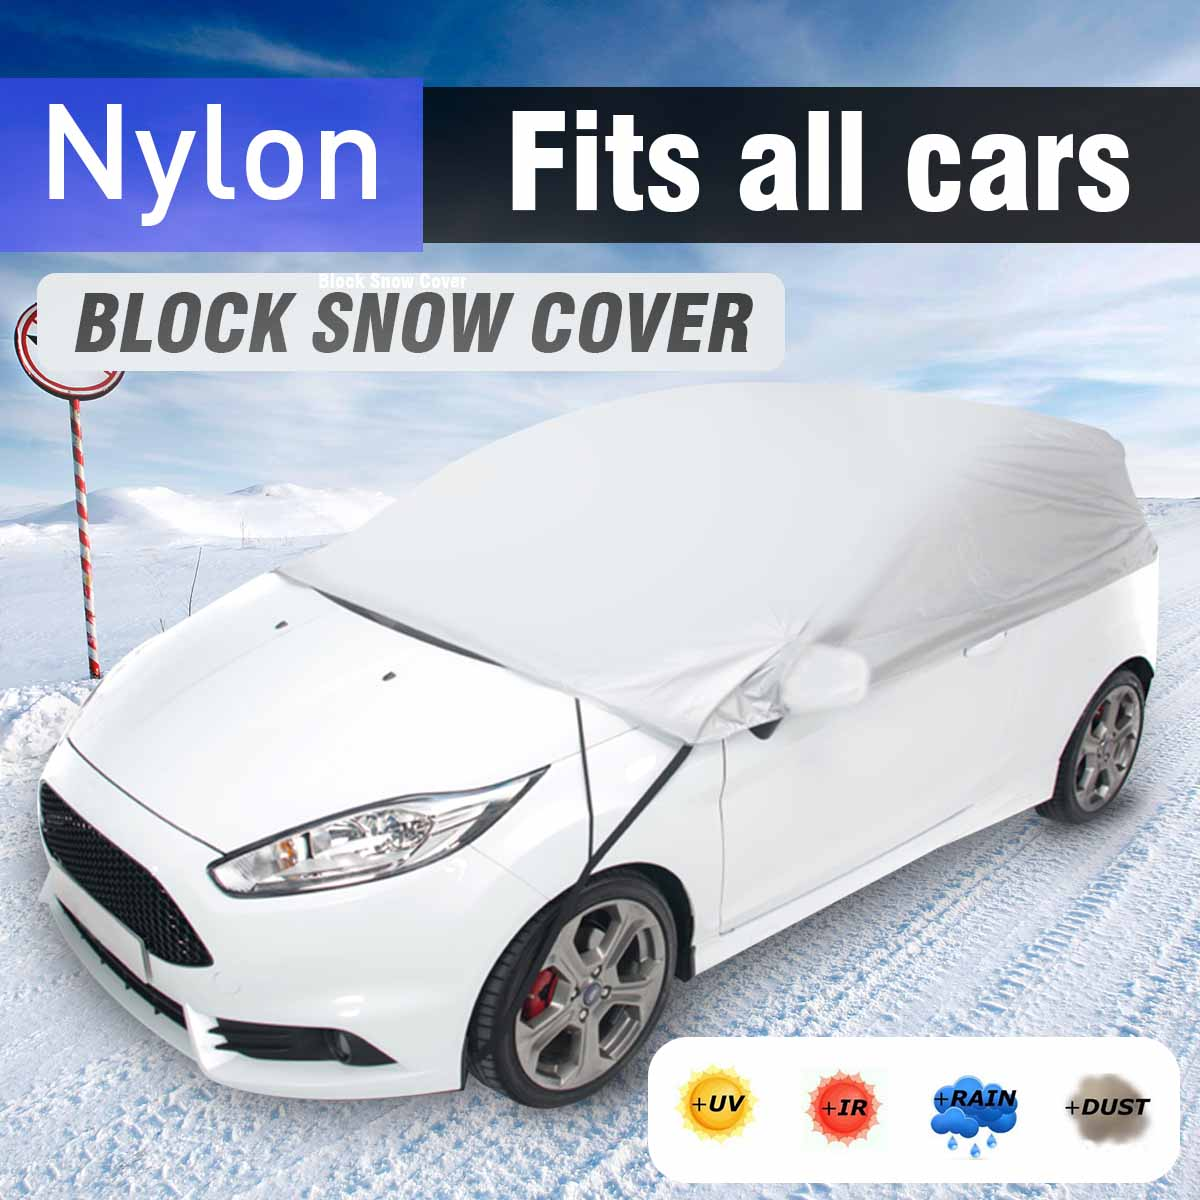 Universal Car Snow Cover Sun Shade Snow Ice Protection Dustproof Waterproof Winter Outdoor Protective Covers Size M L XL